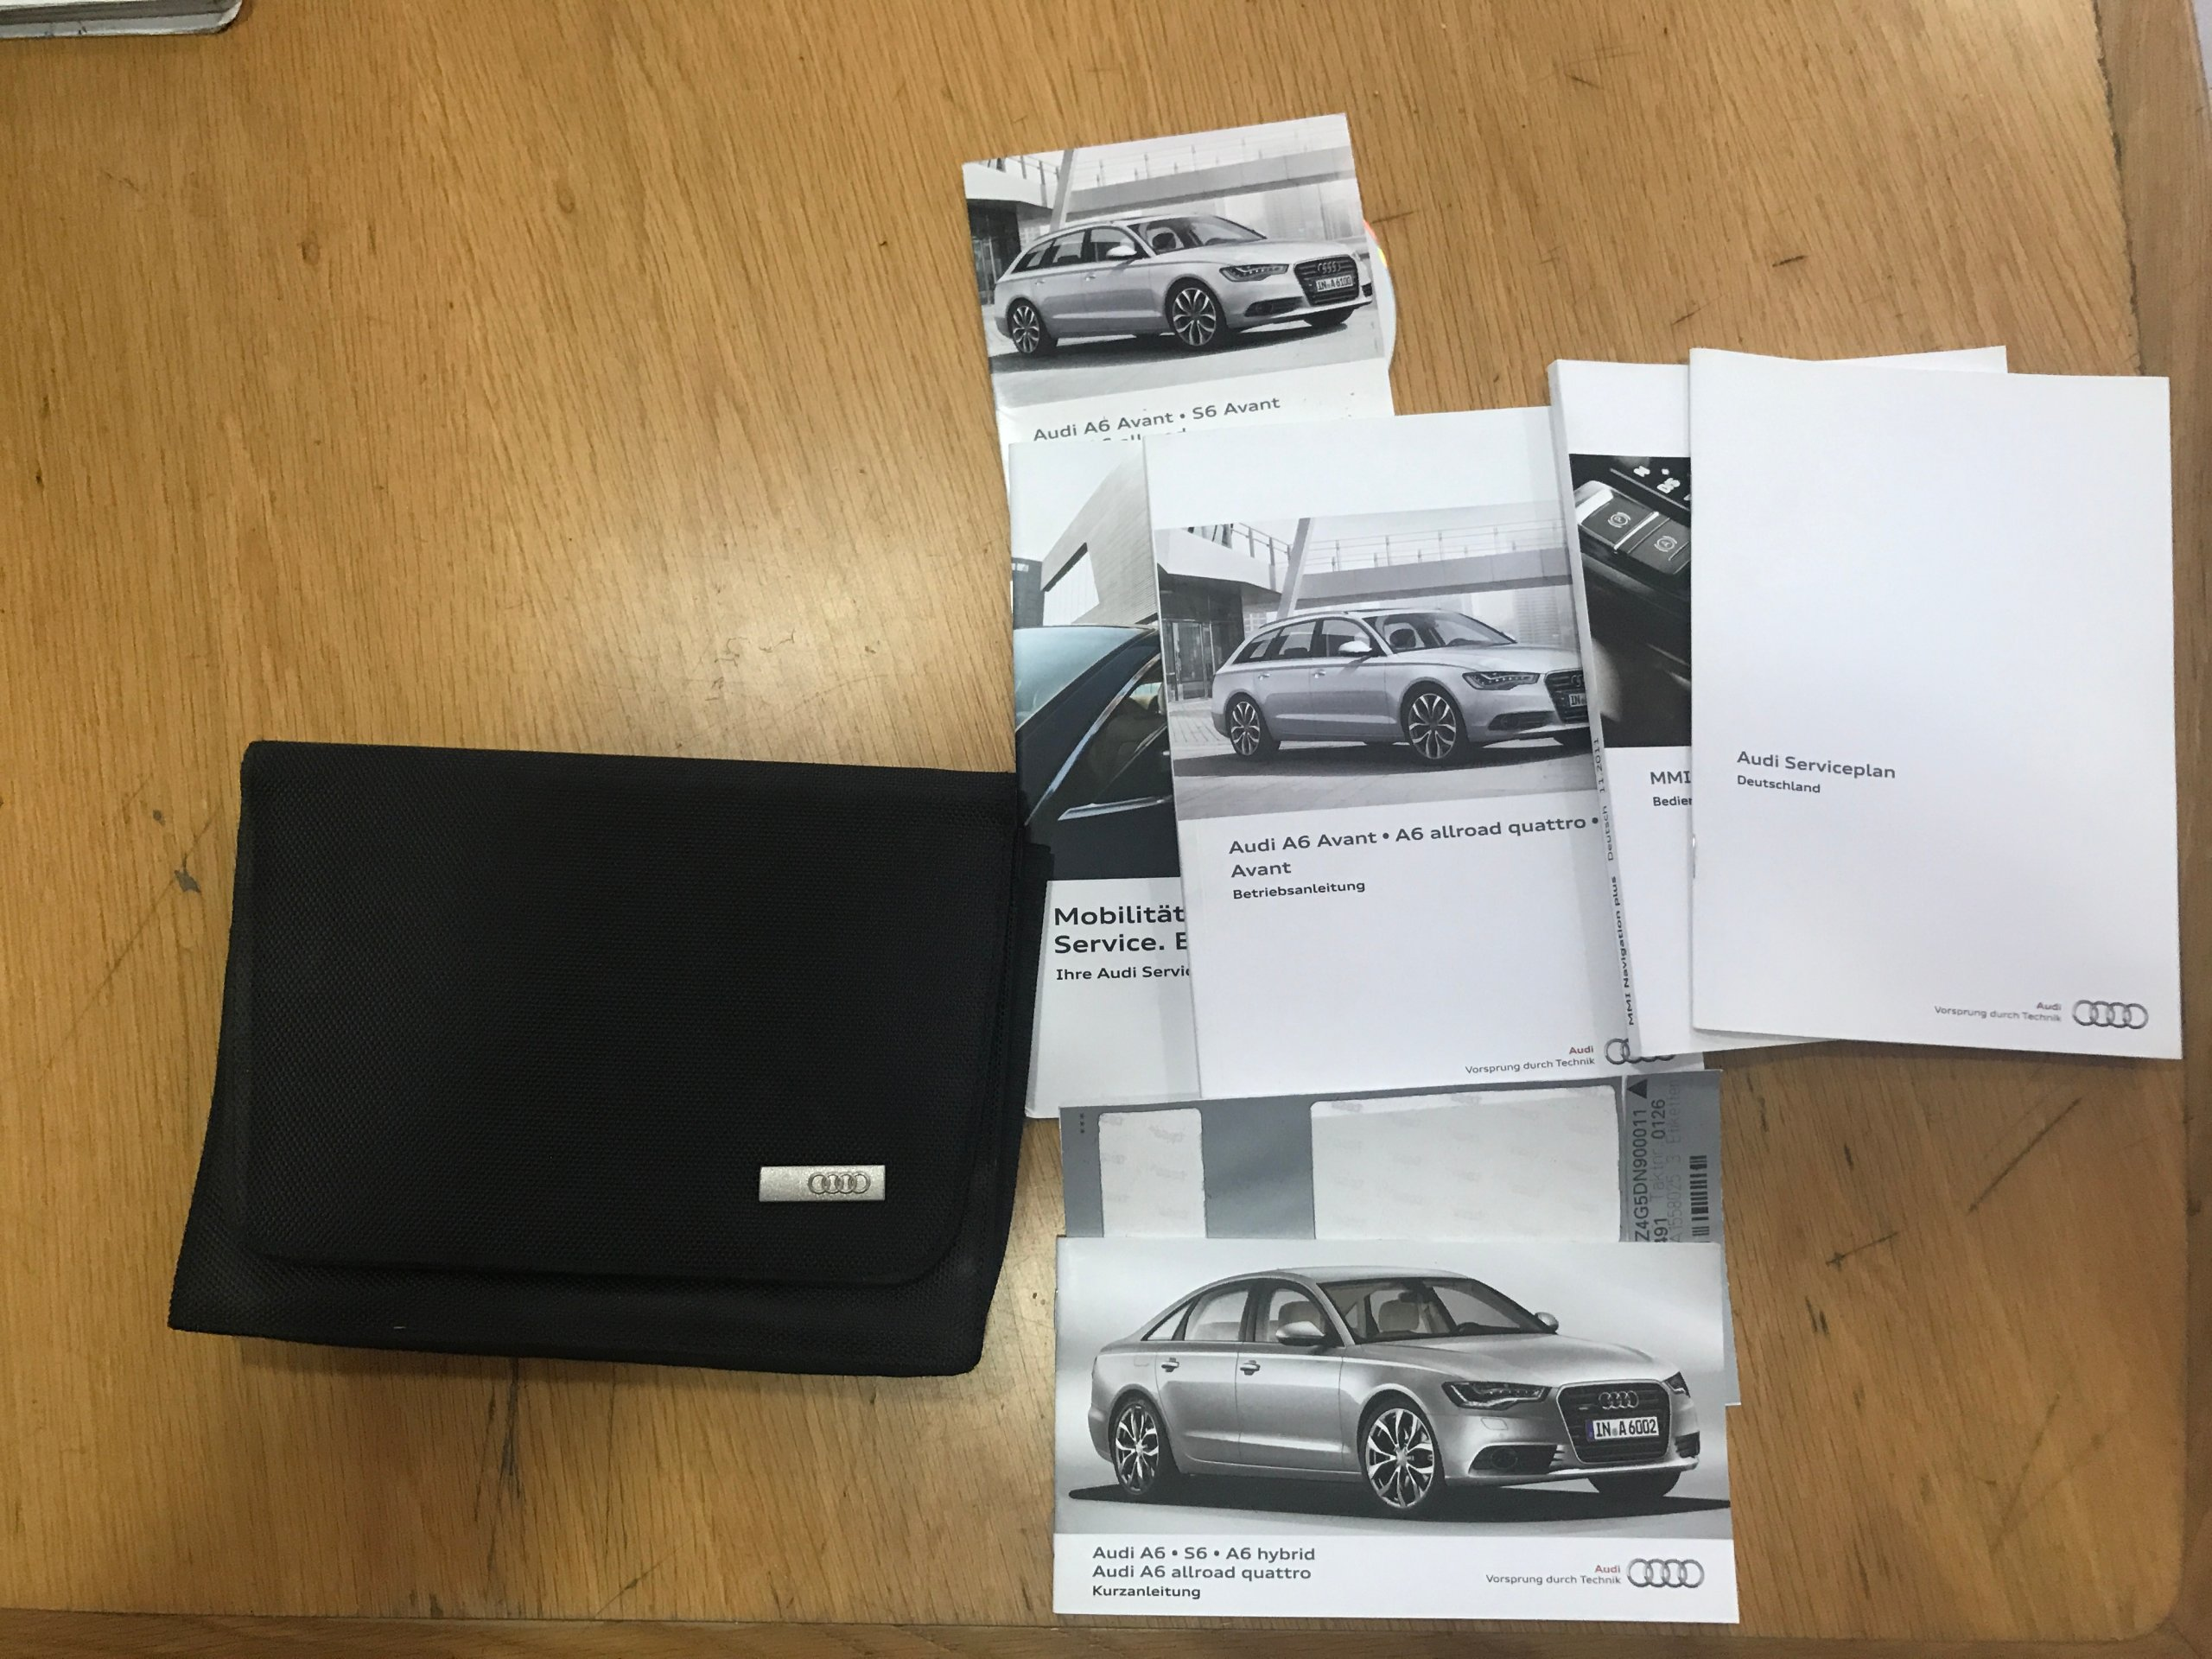 Picture of *Audi RS6 4G0 manual service book cases*